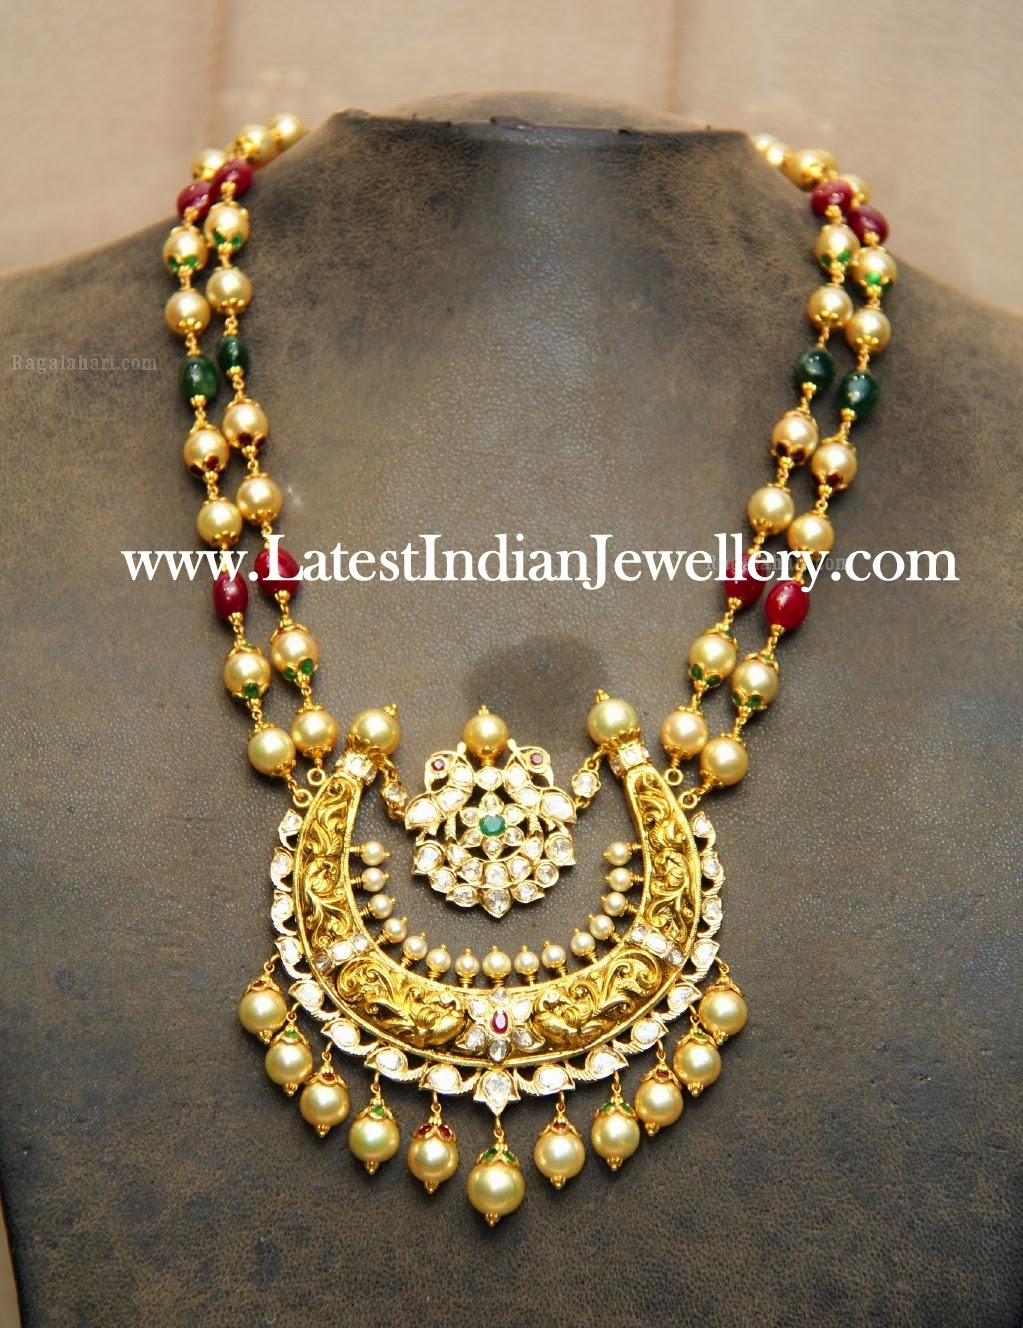 Beads Necklace with Antique Pendant